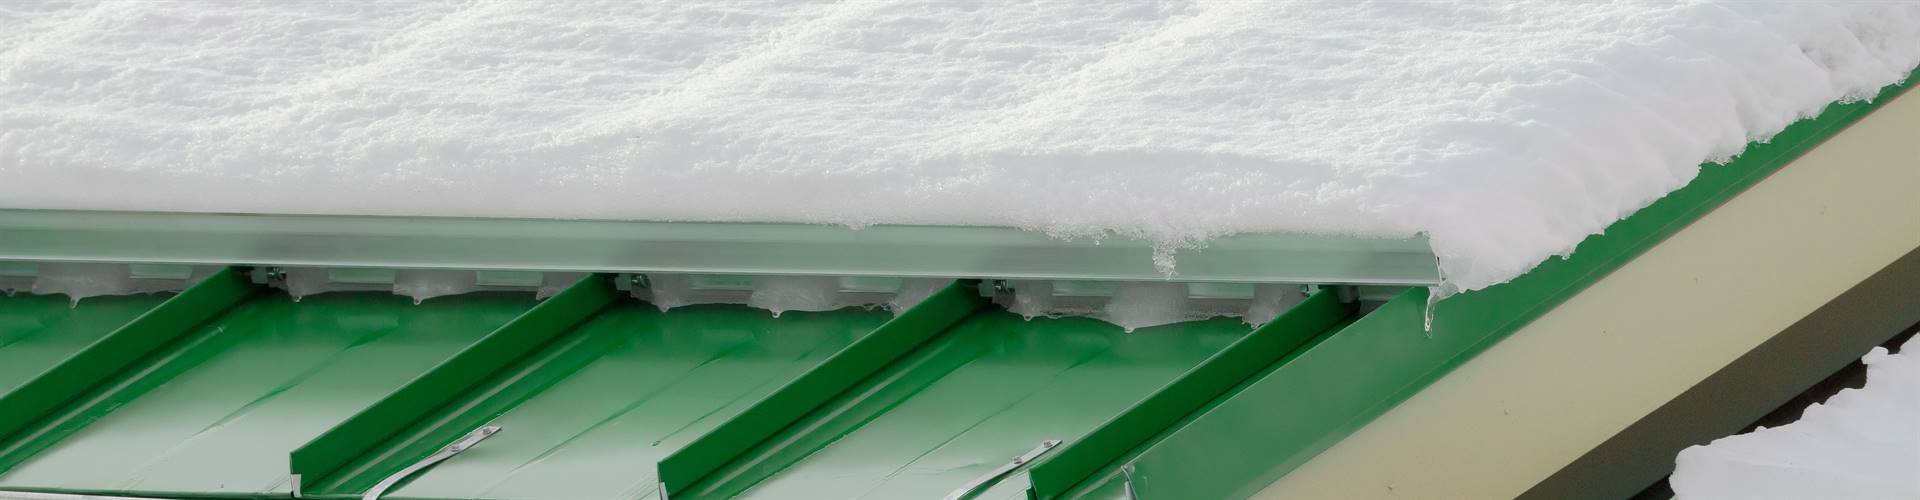 Patented snow guard design protects roofing material from damage